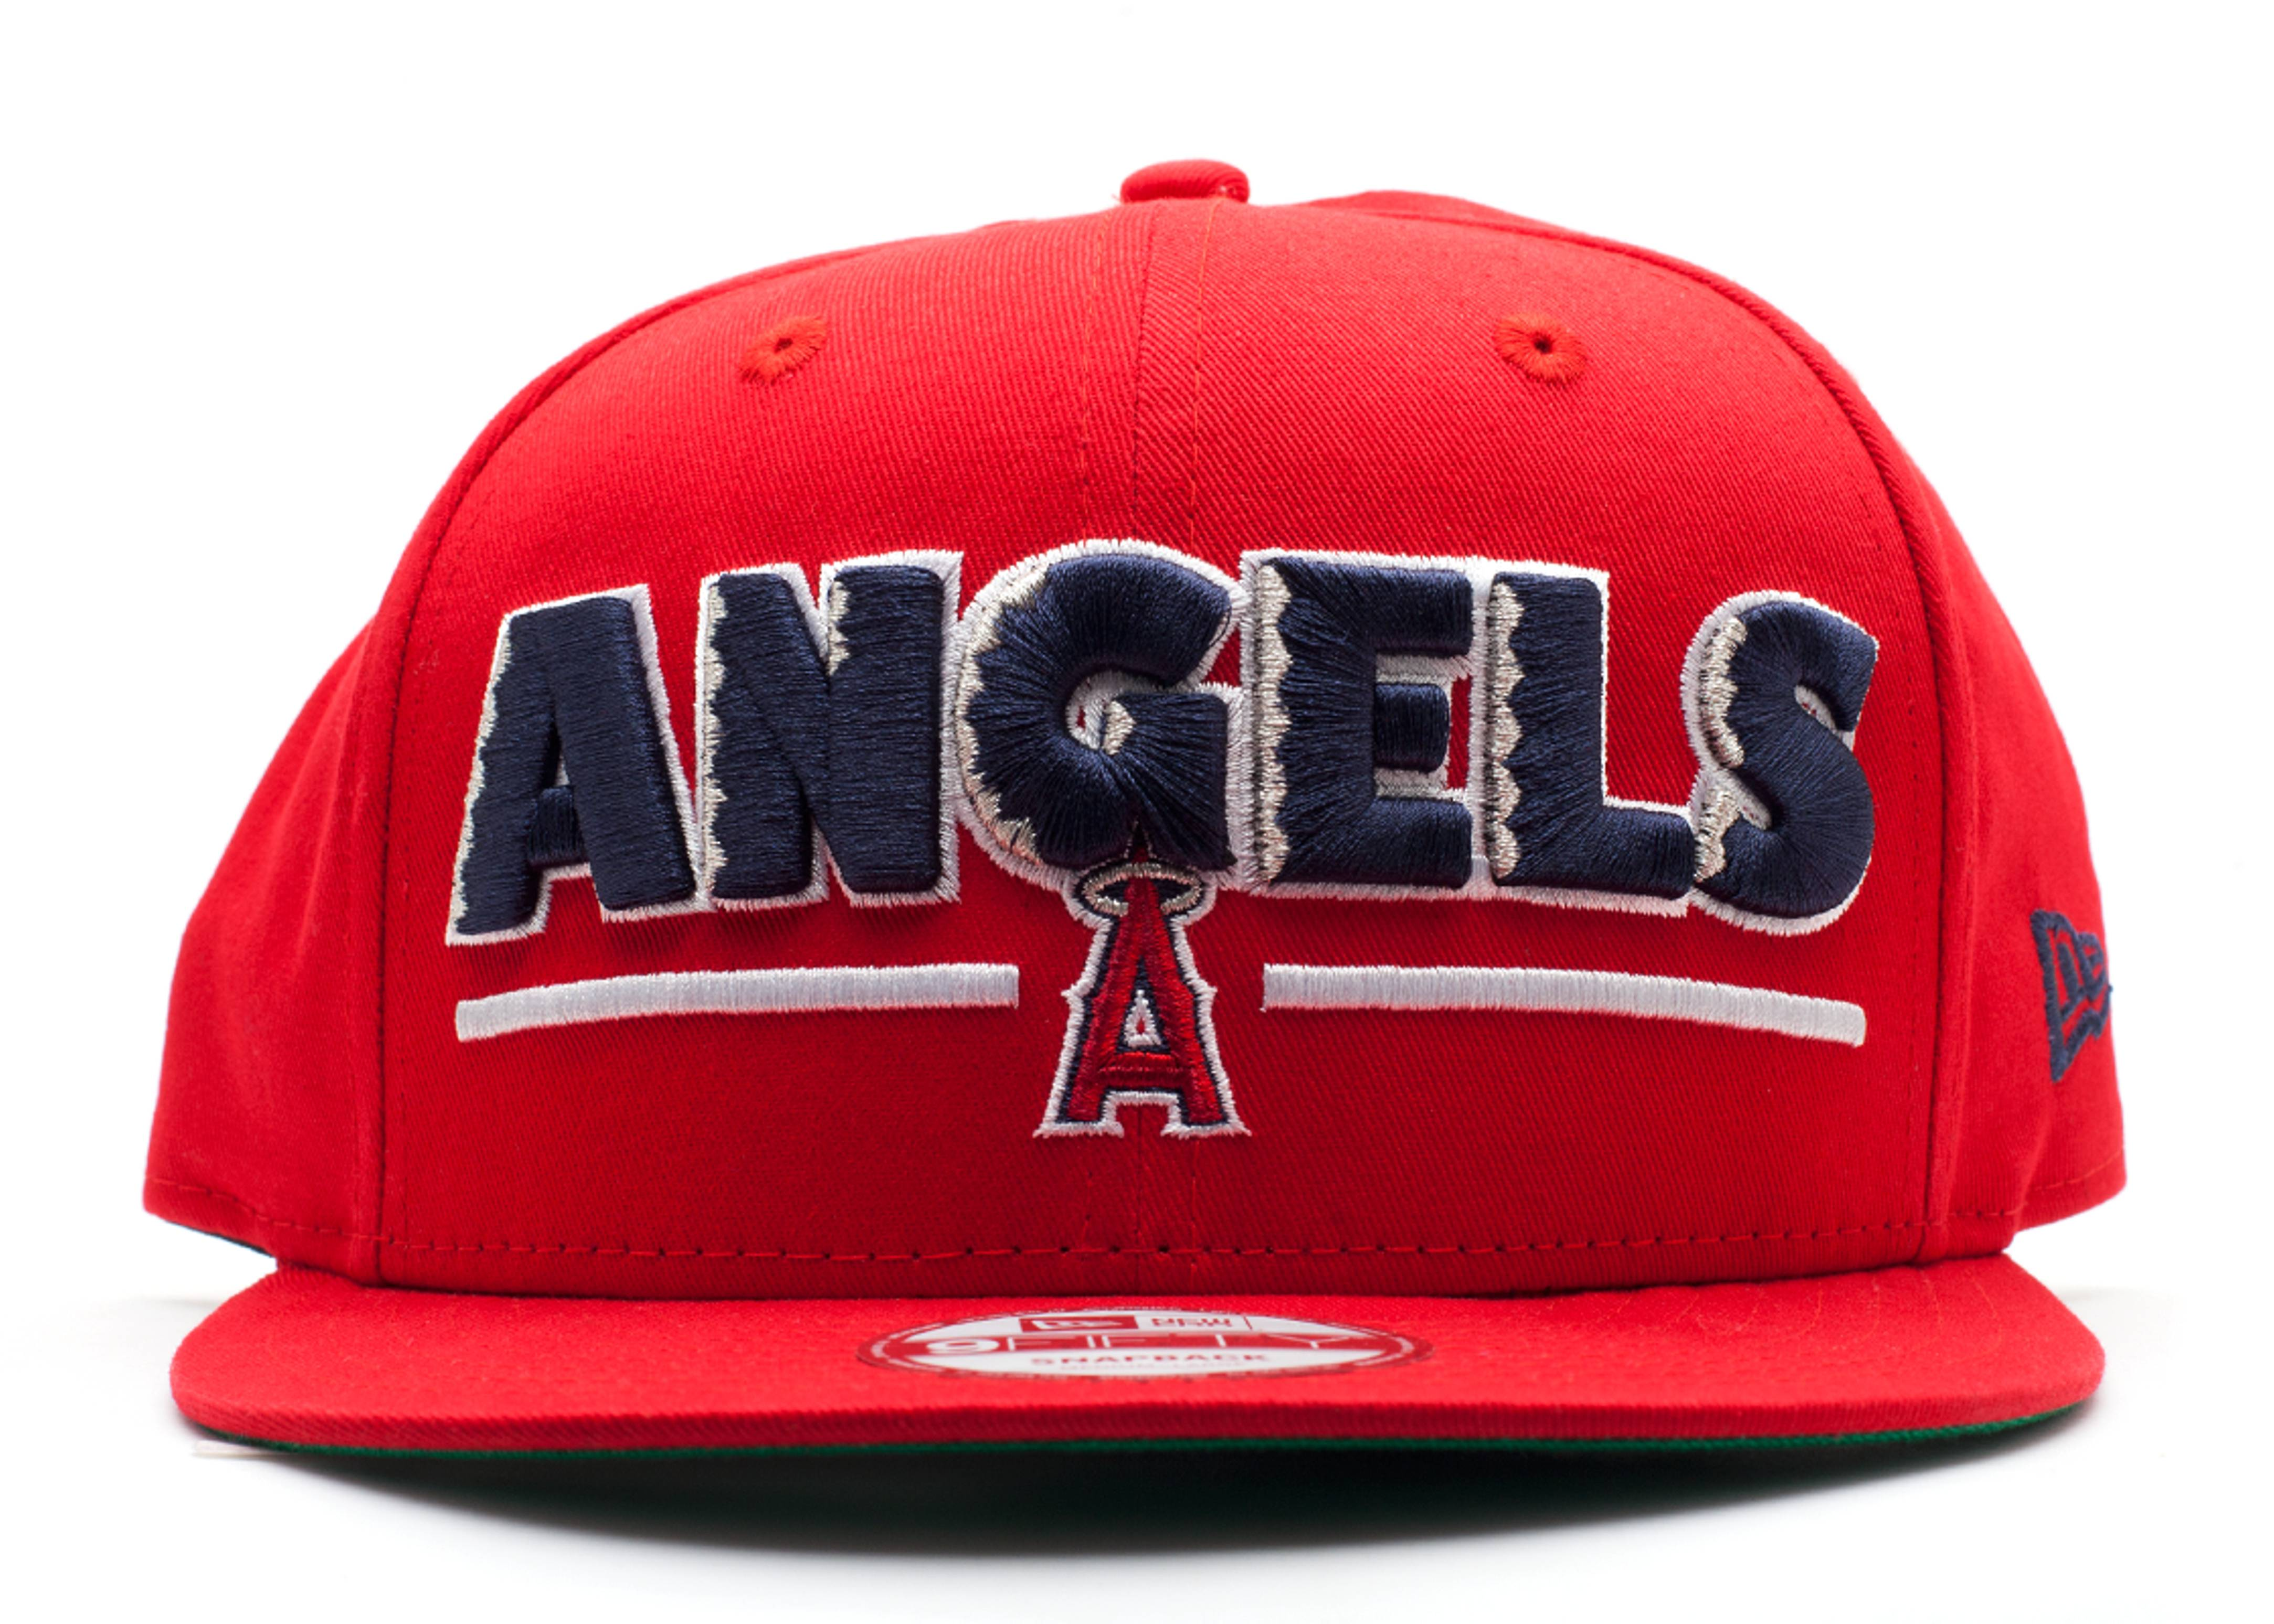 los angeles angels snap-back